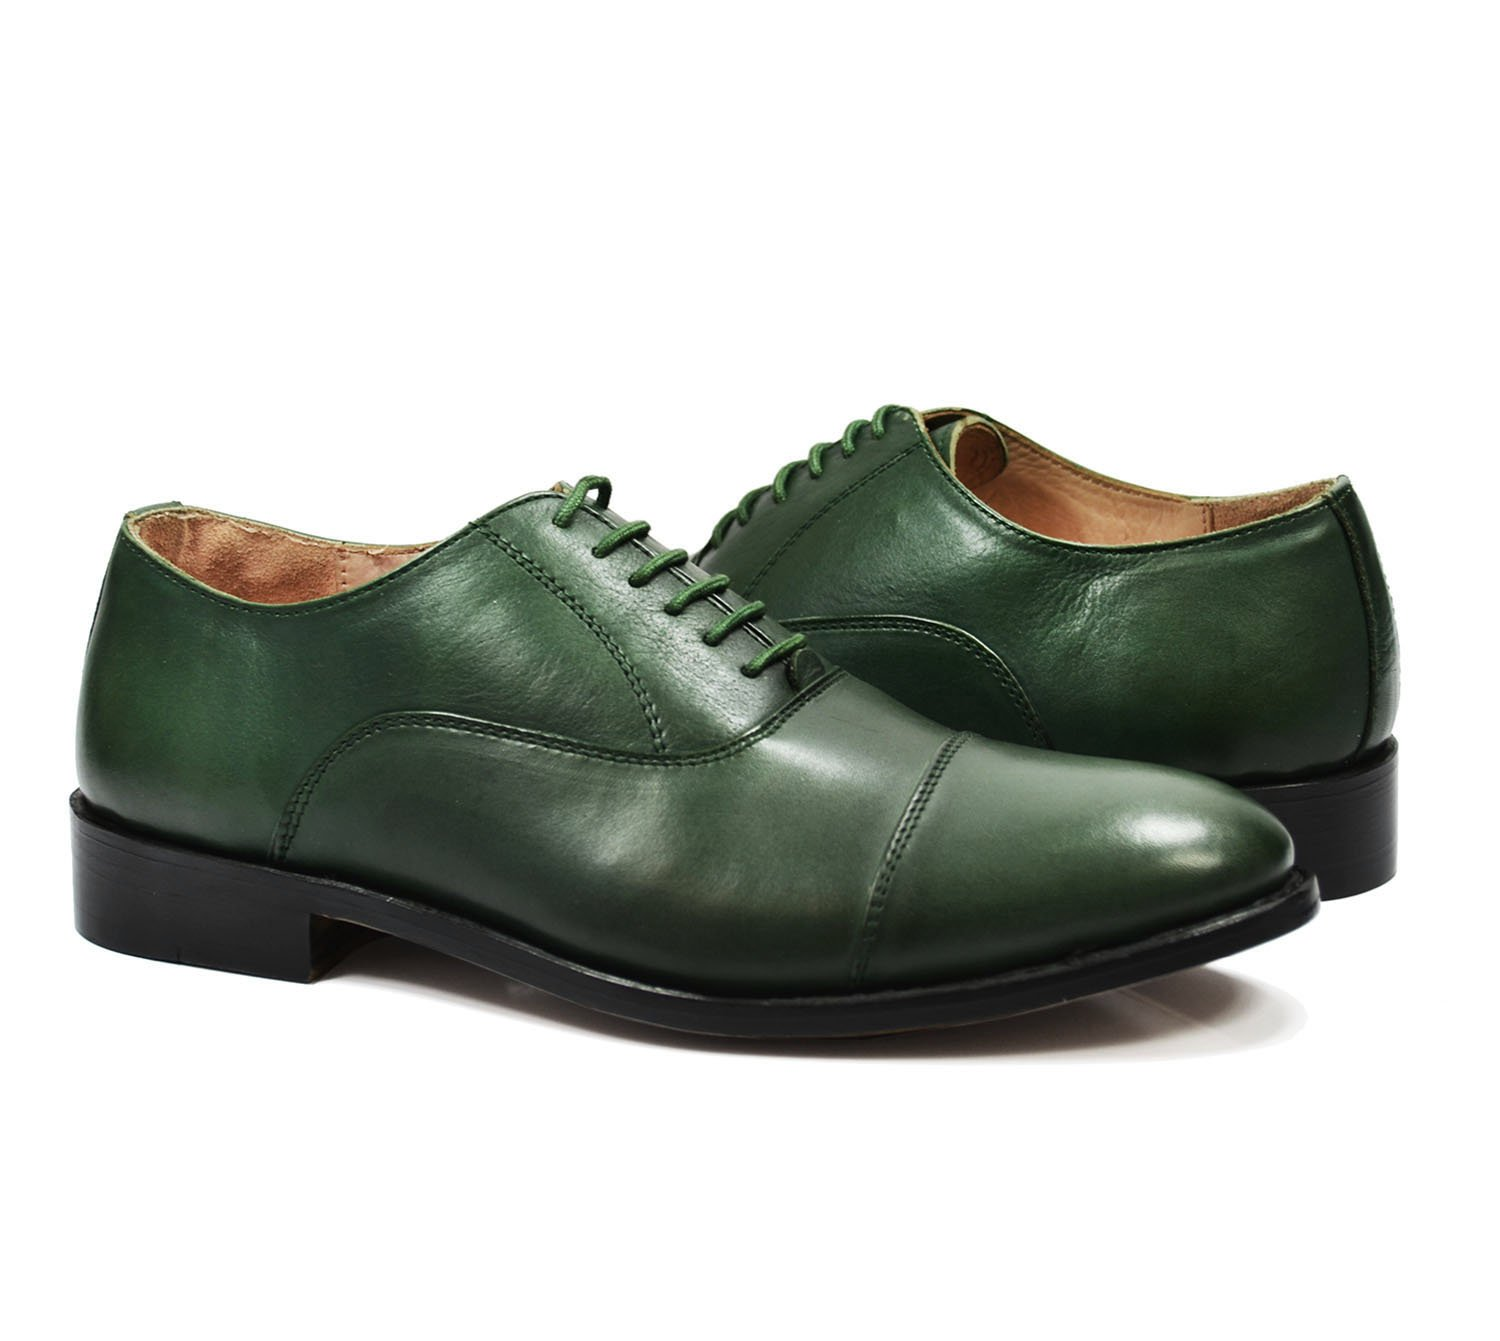 Paul Malone Cap-Toe in Smoke Pine Green, Full Leather